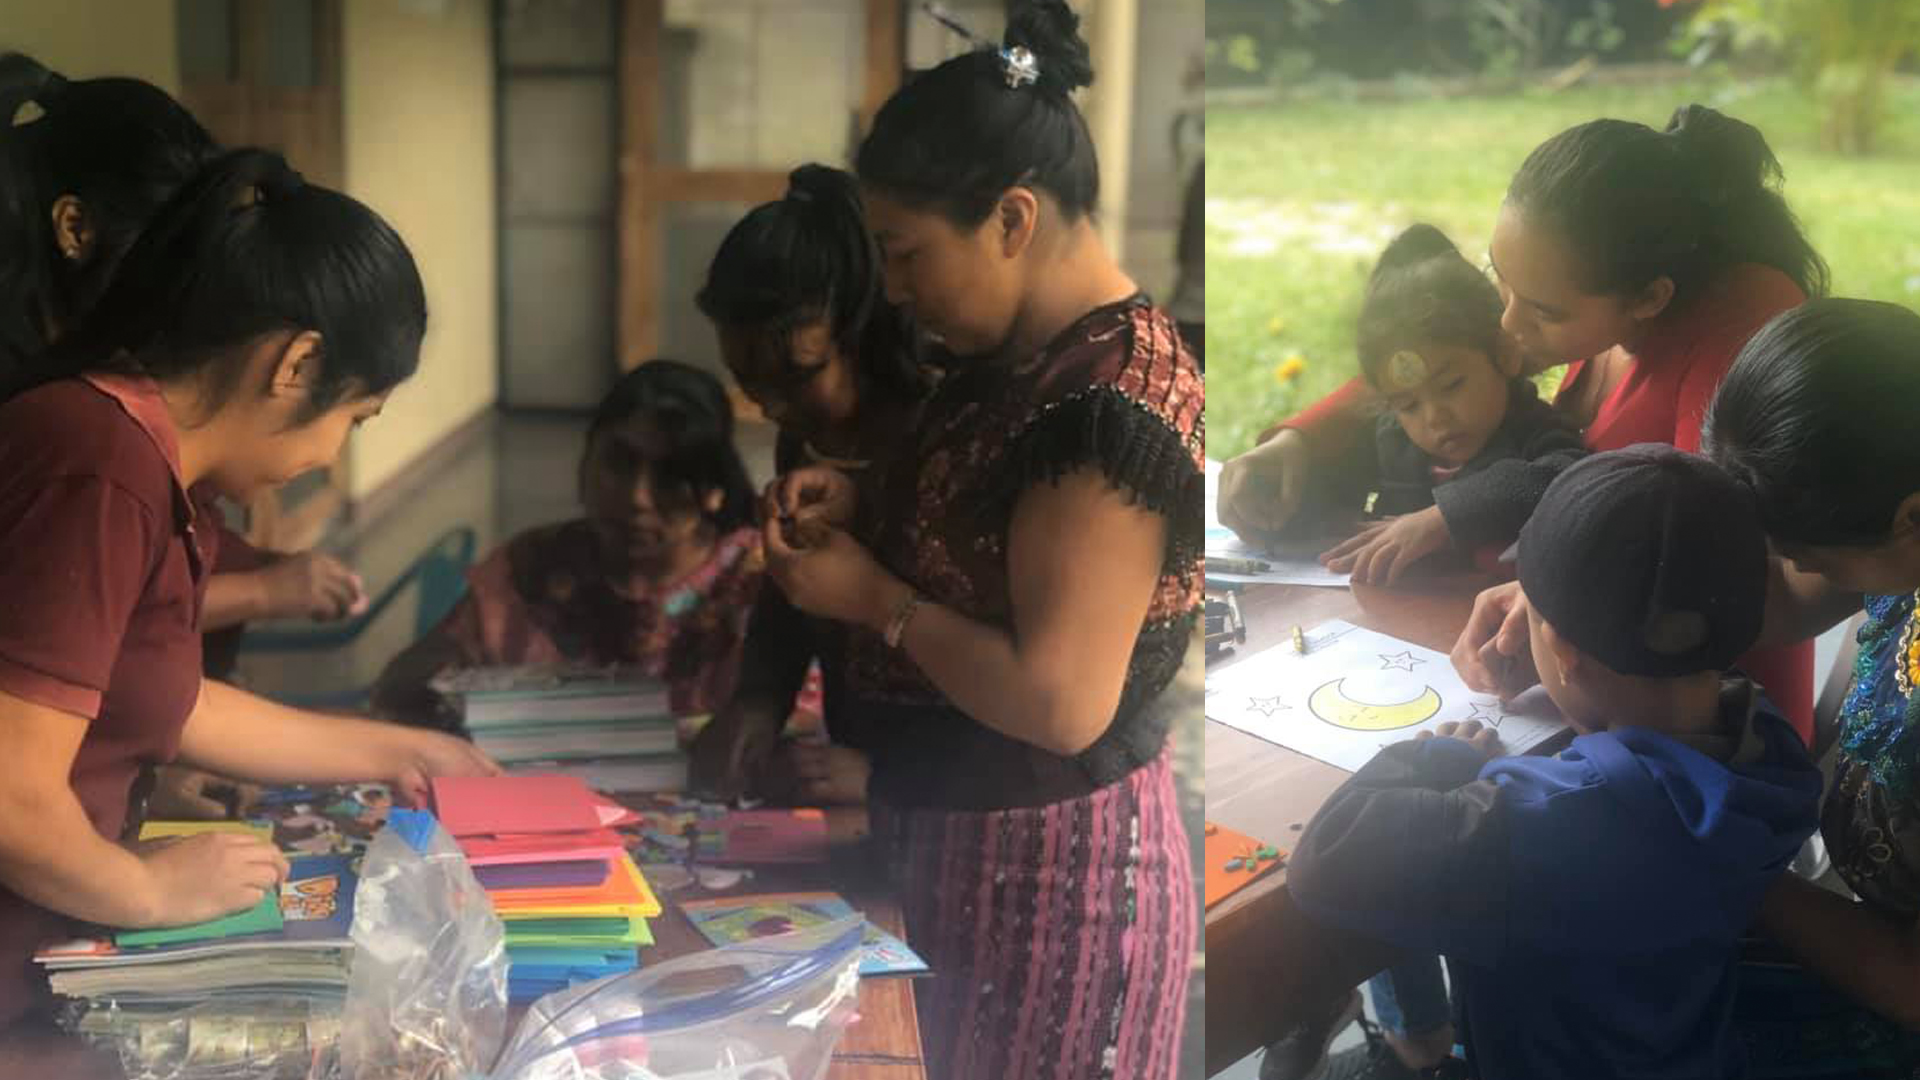 Gods-Word-is-at-Work-in-Guatemala